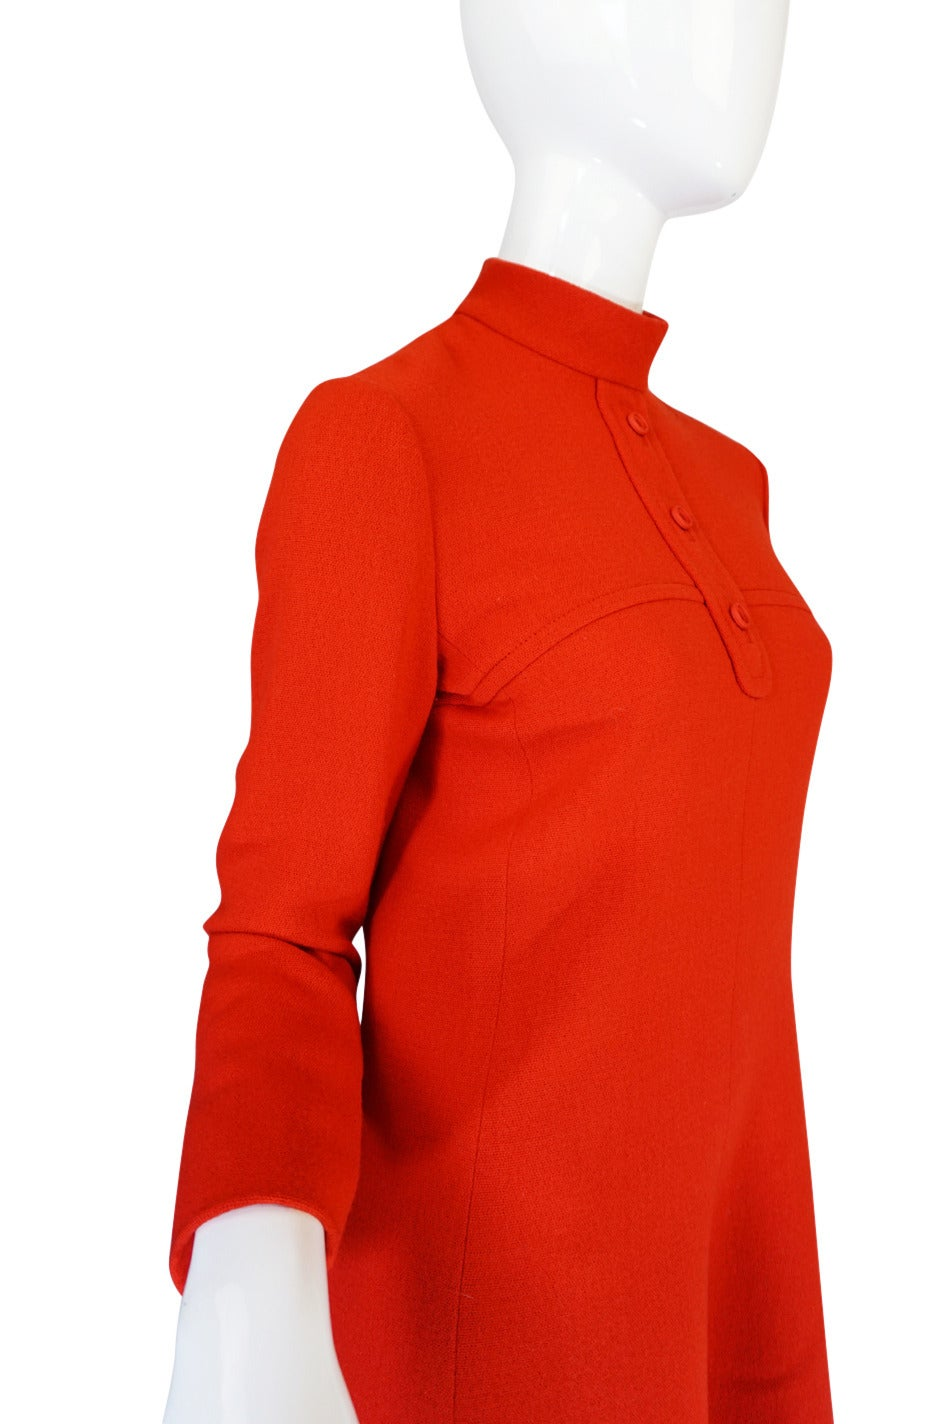 Women's 1960s Miss Dior Chic Bright Red Mod Dress For Sale